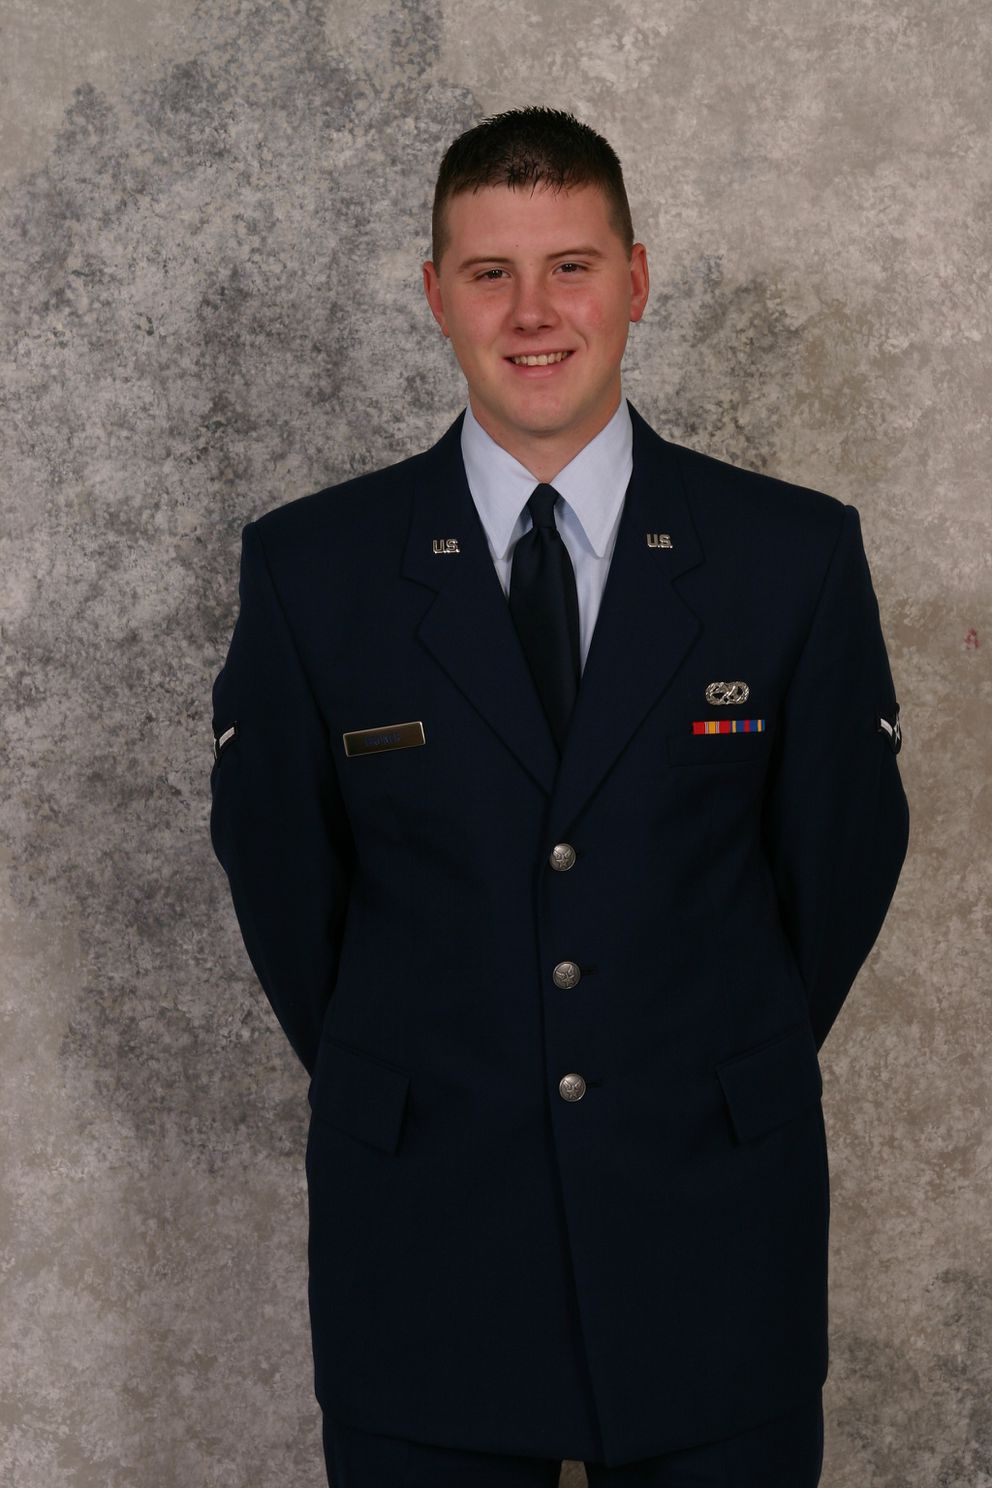 Rob Bruner in his Air Force uniform in 2004. (Photo courtesy of Rob Bruner)